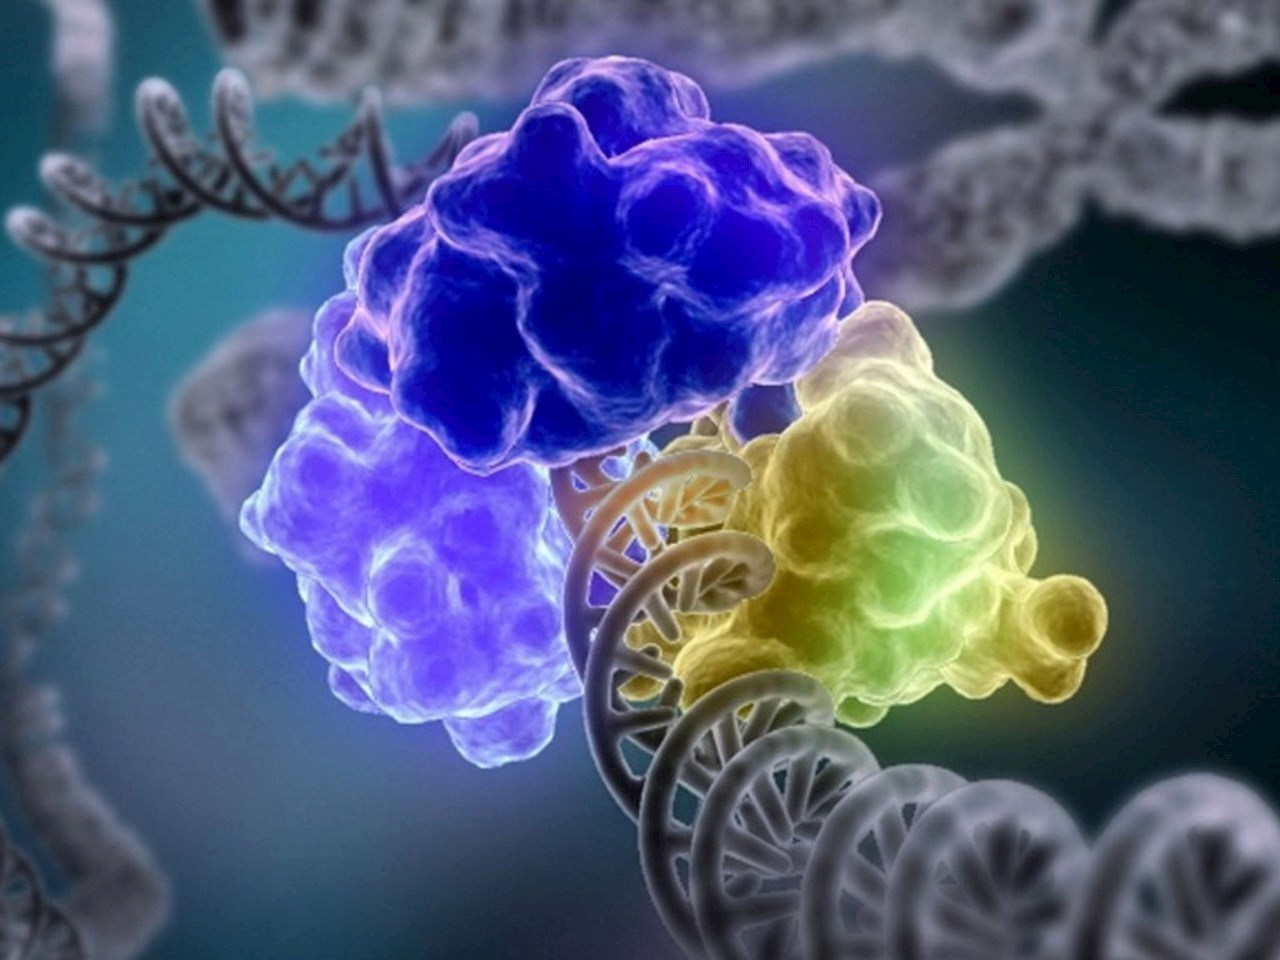 Scientists have figured out how to use a cell's DNA repair mechanisms